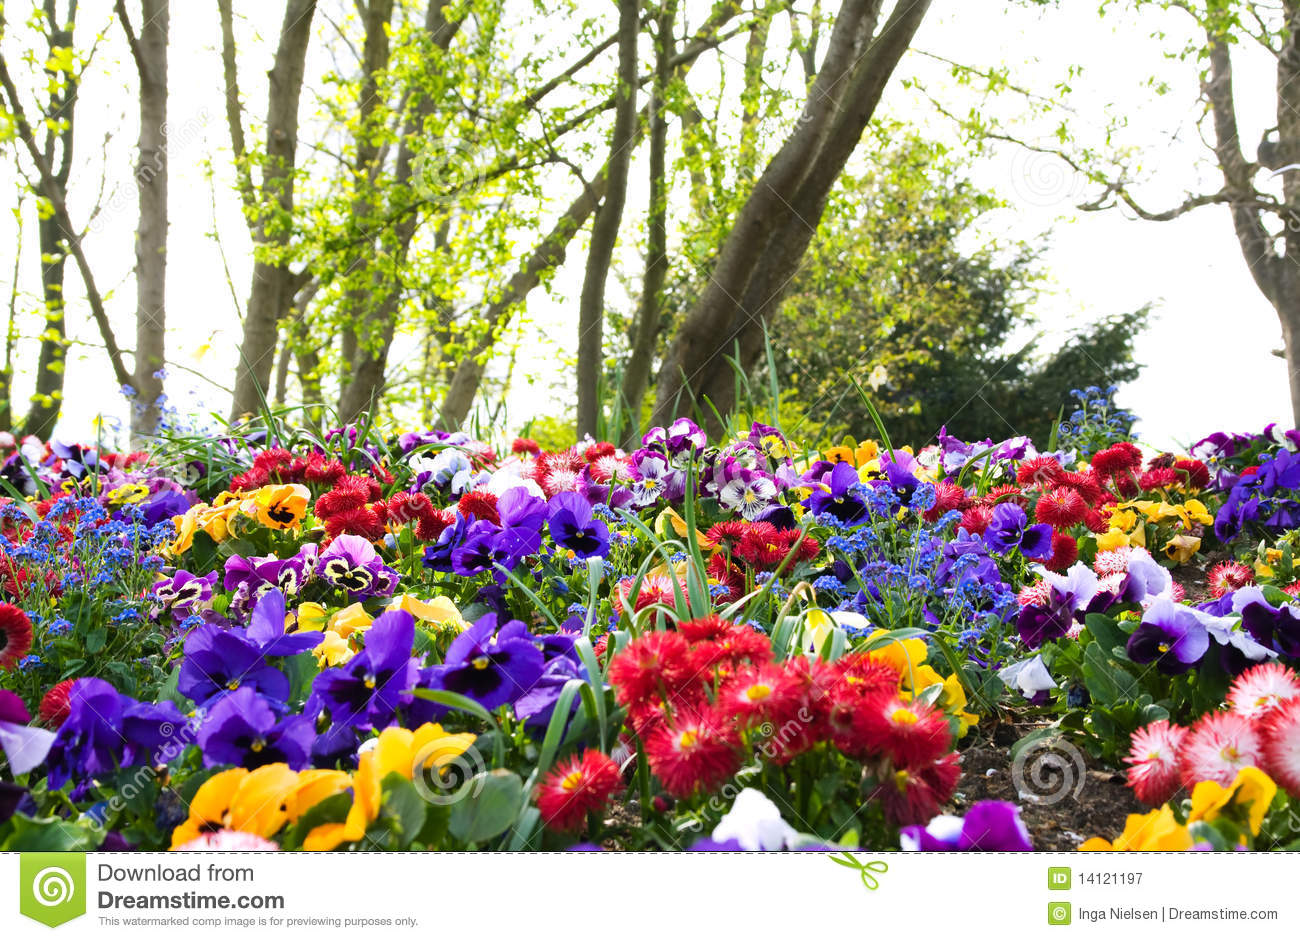 Colorful flowers and trees stock image. Image of diversity - 14121197